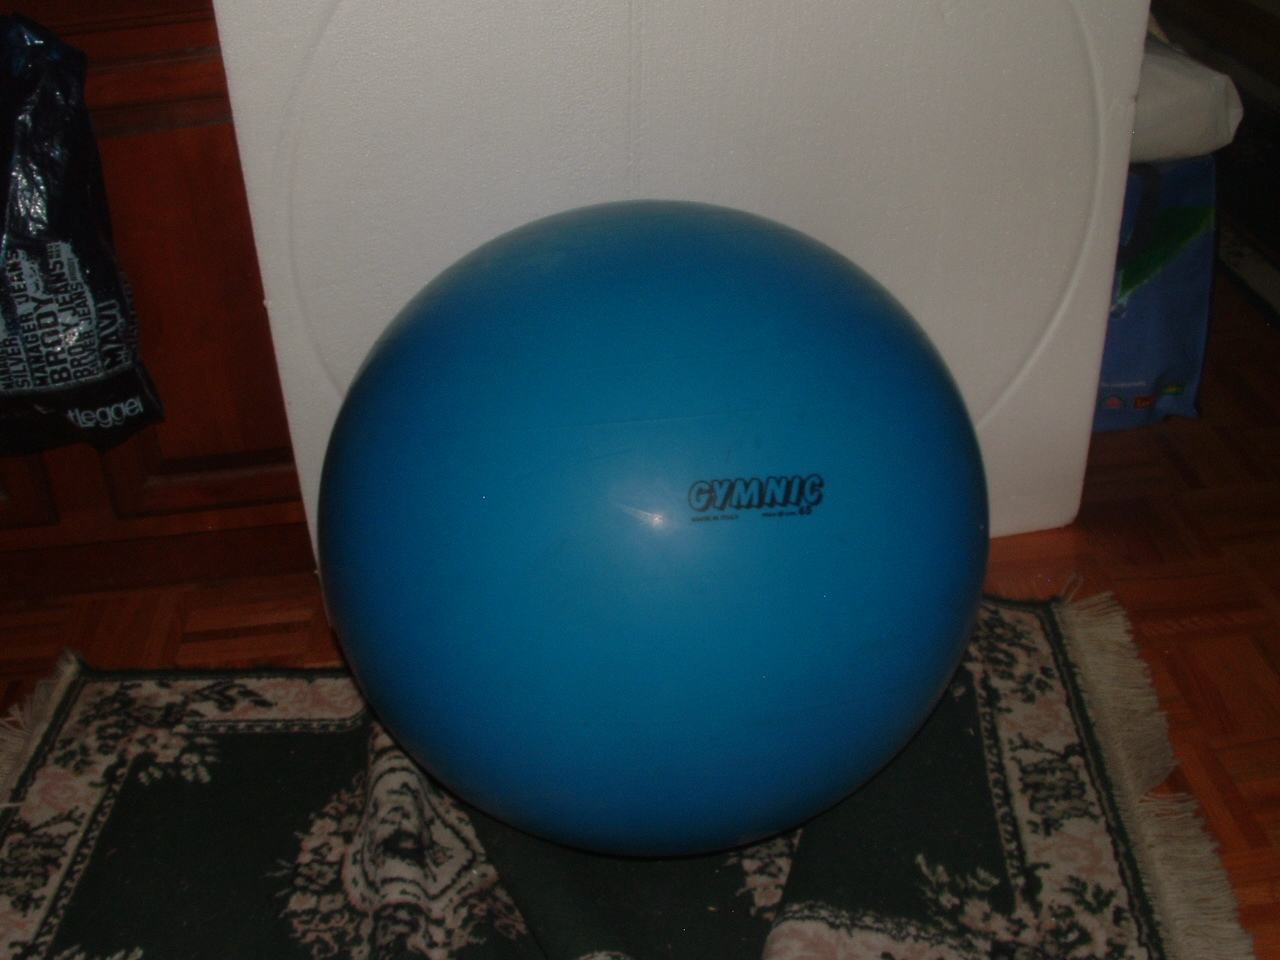 Gynmic Ball, Made In Italy, Fitness And Exercise Ball - High Chair Ball 006